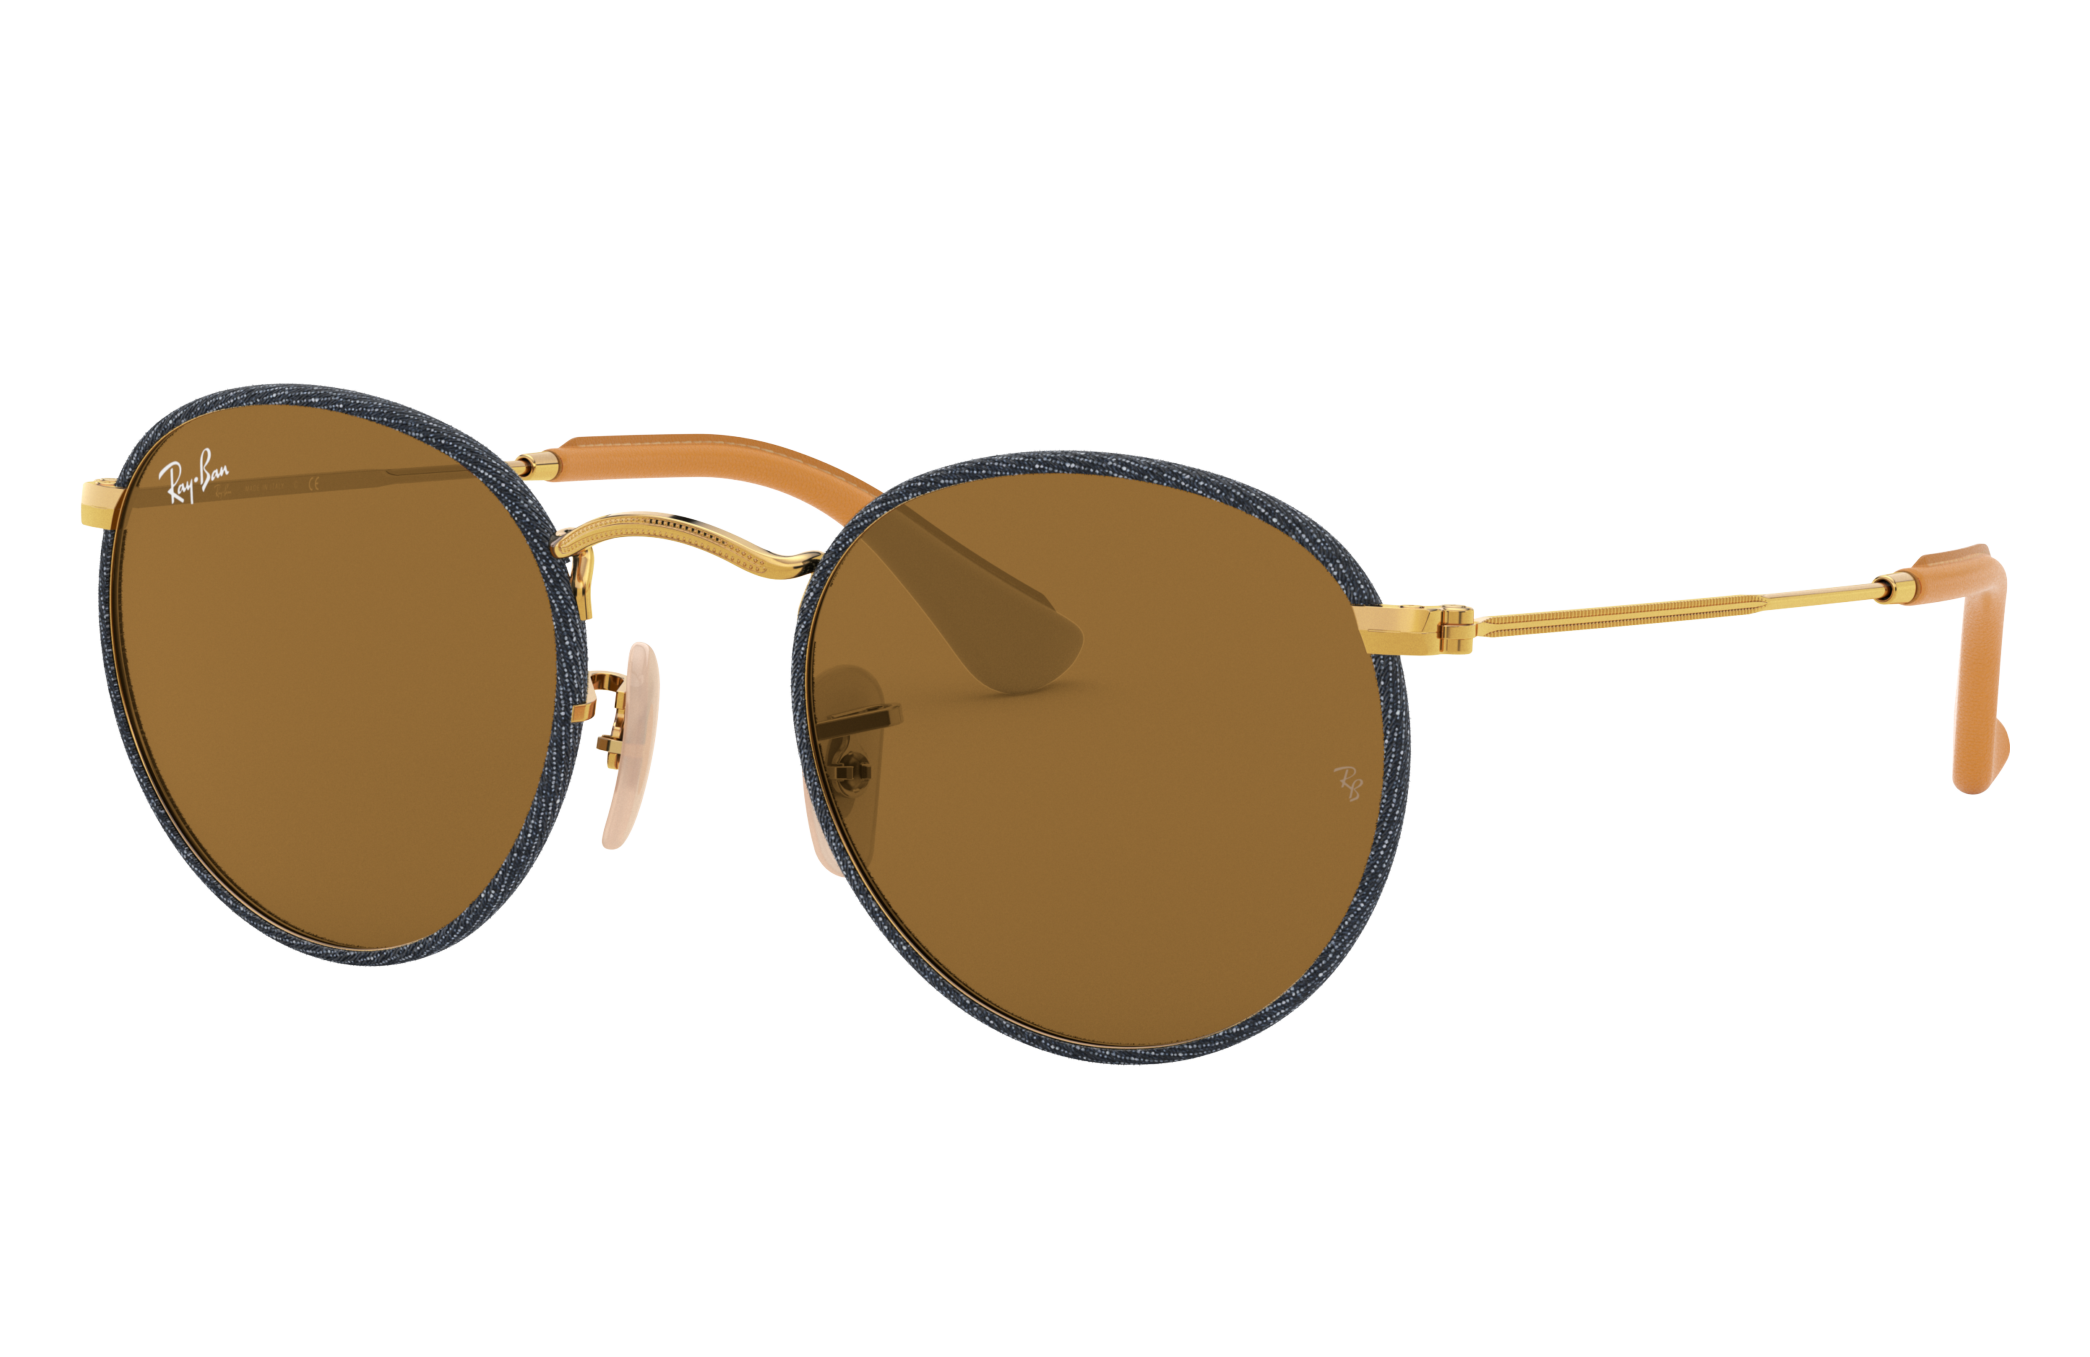 Ray-Ban Round Craft Gold, Brown Lenses - RB3475Q